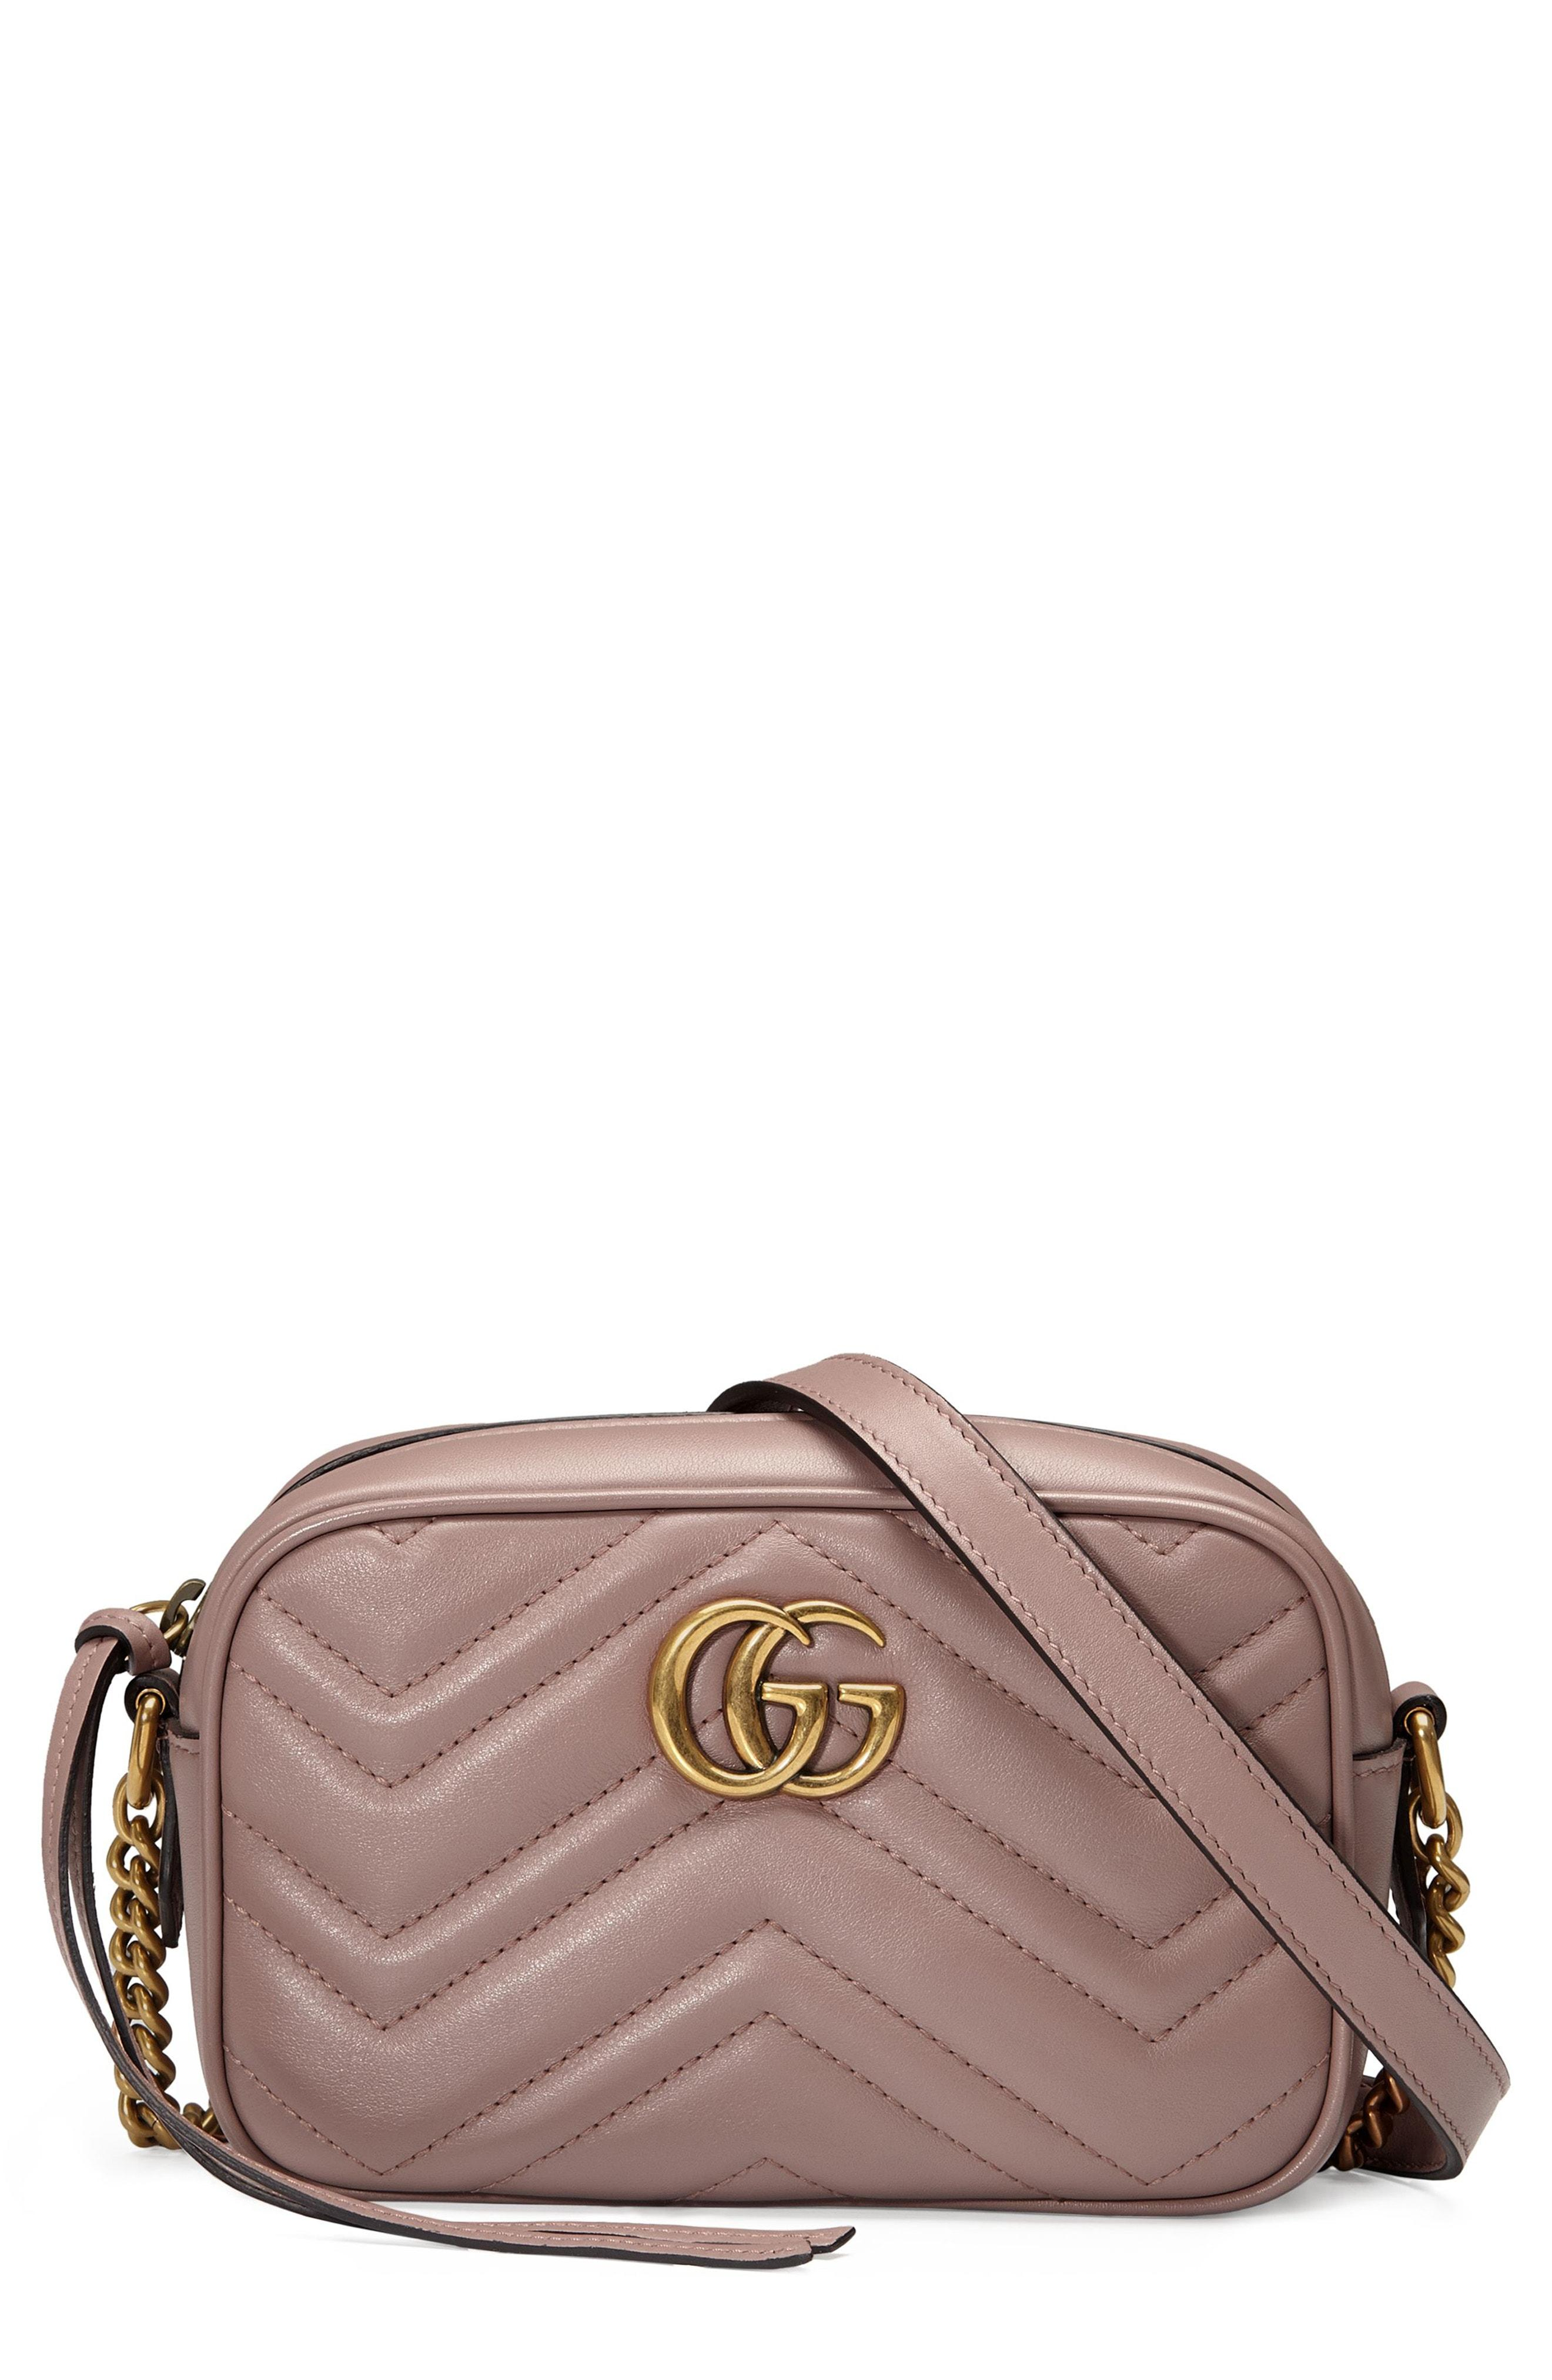 e0d7ccdad Gucci Small Gg Marmont 2.0 Matelasse Leather Camera Bag - Beige In ...